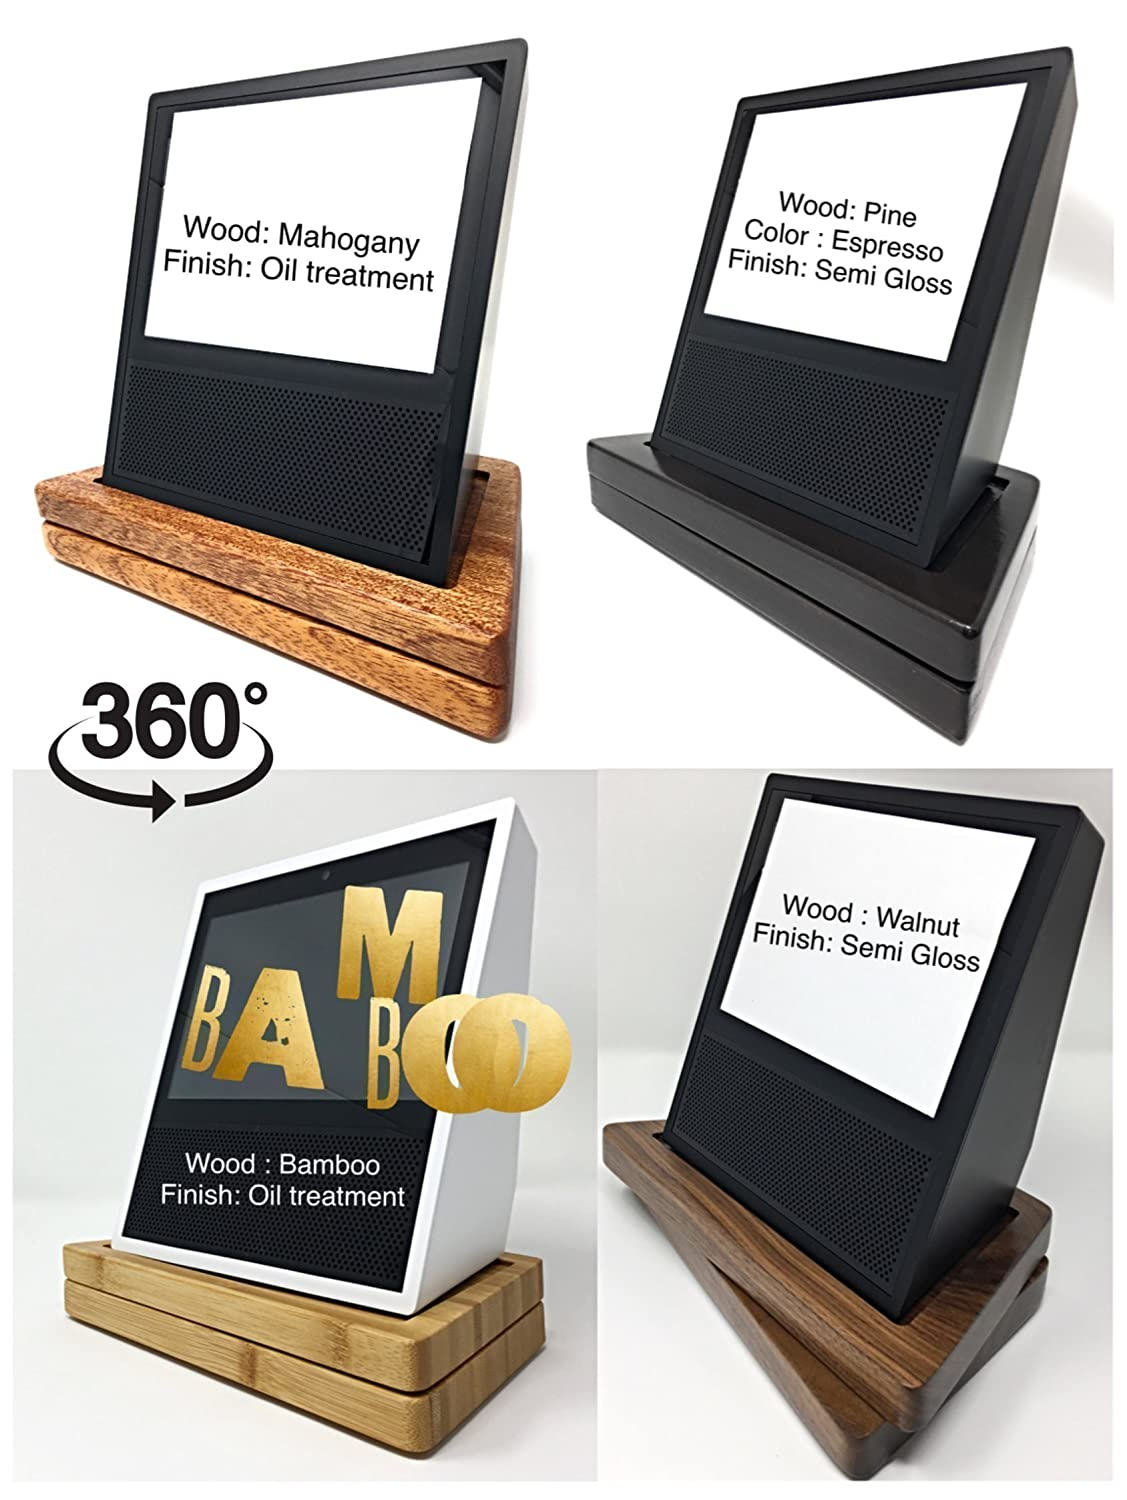 Amazon Echo Show Luxurious Holder, You CUSTOMIZE to your Own Style. Farmhouse,Rustic, Modern, Classy, Real Hardwood, Angle Adjuster & Privacy Cover. Mini Phone Stand,Modified Spin for accurate Turning